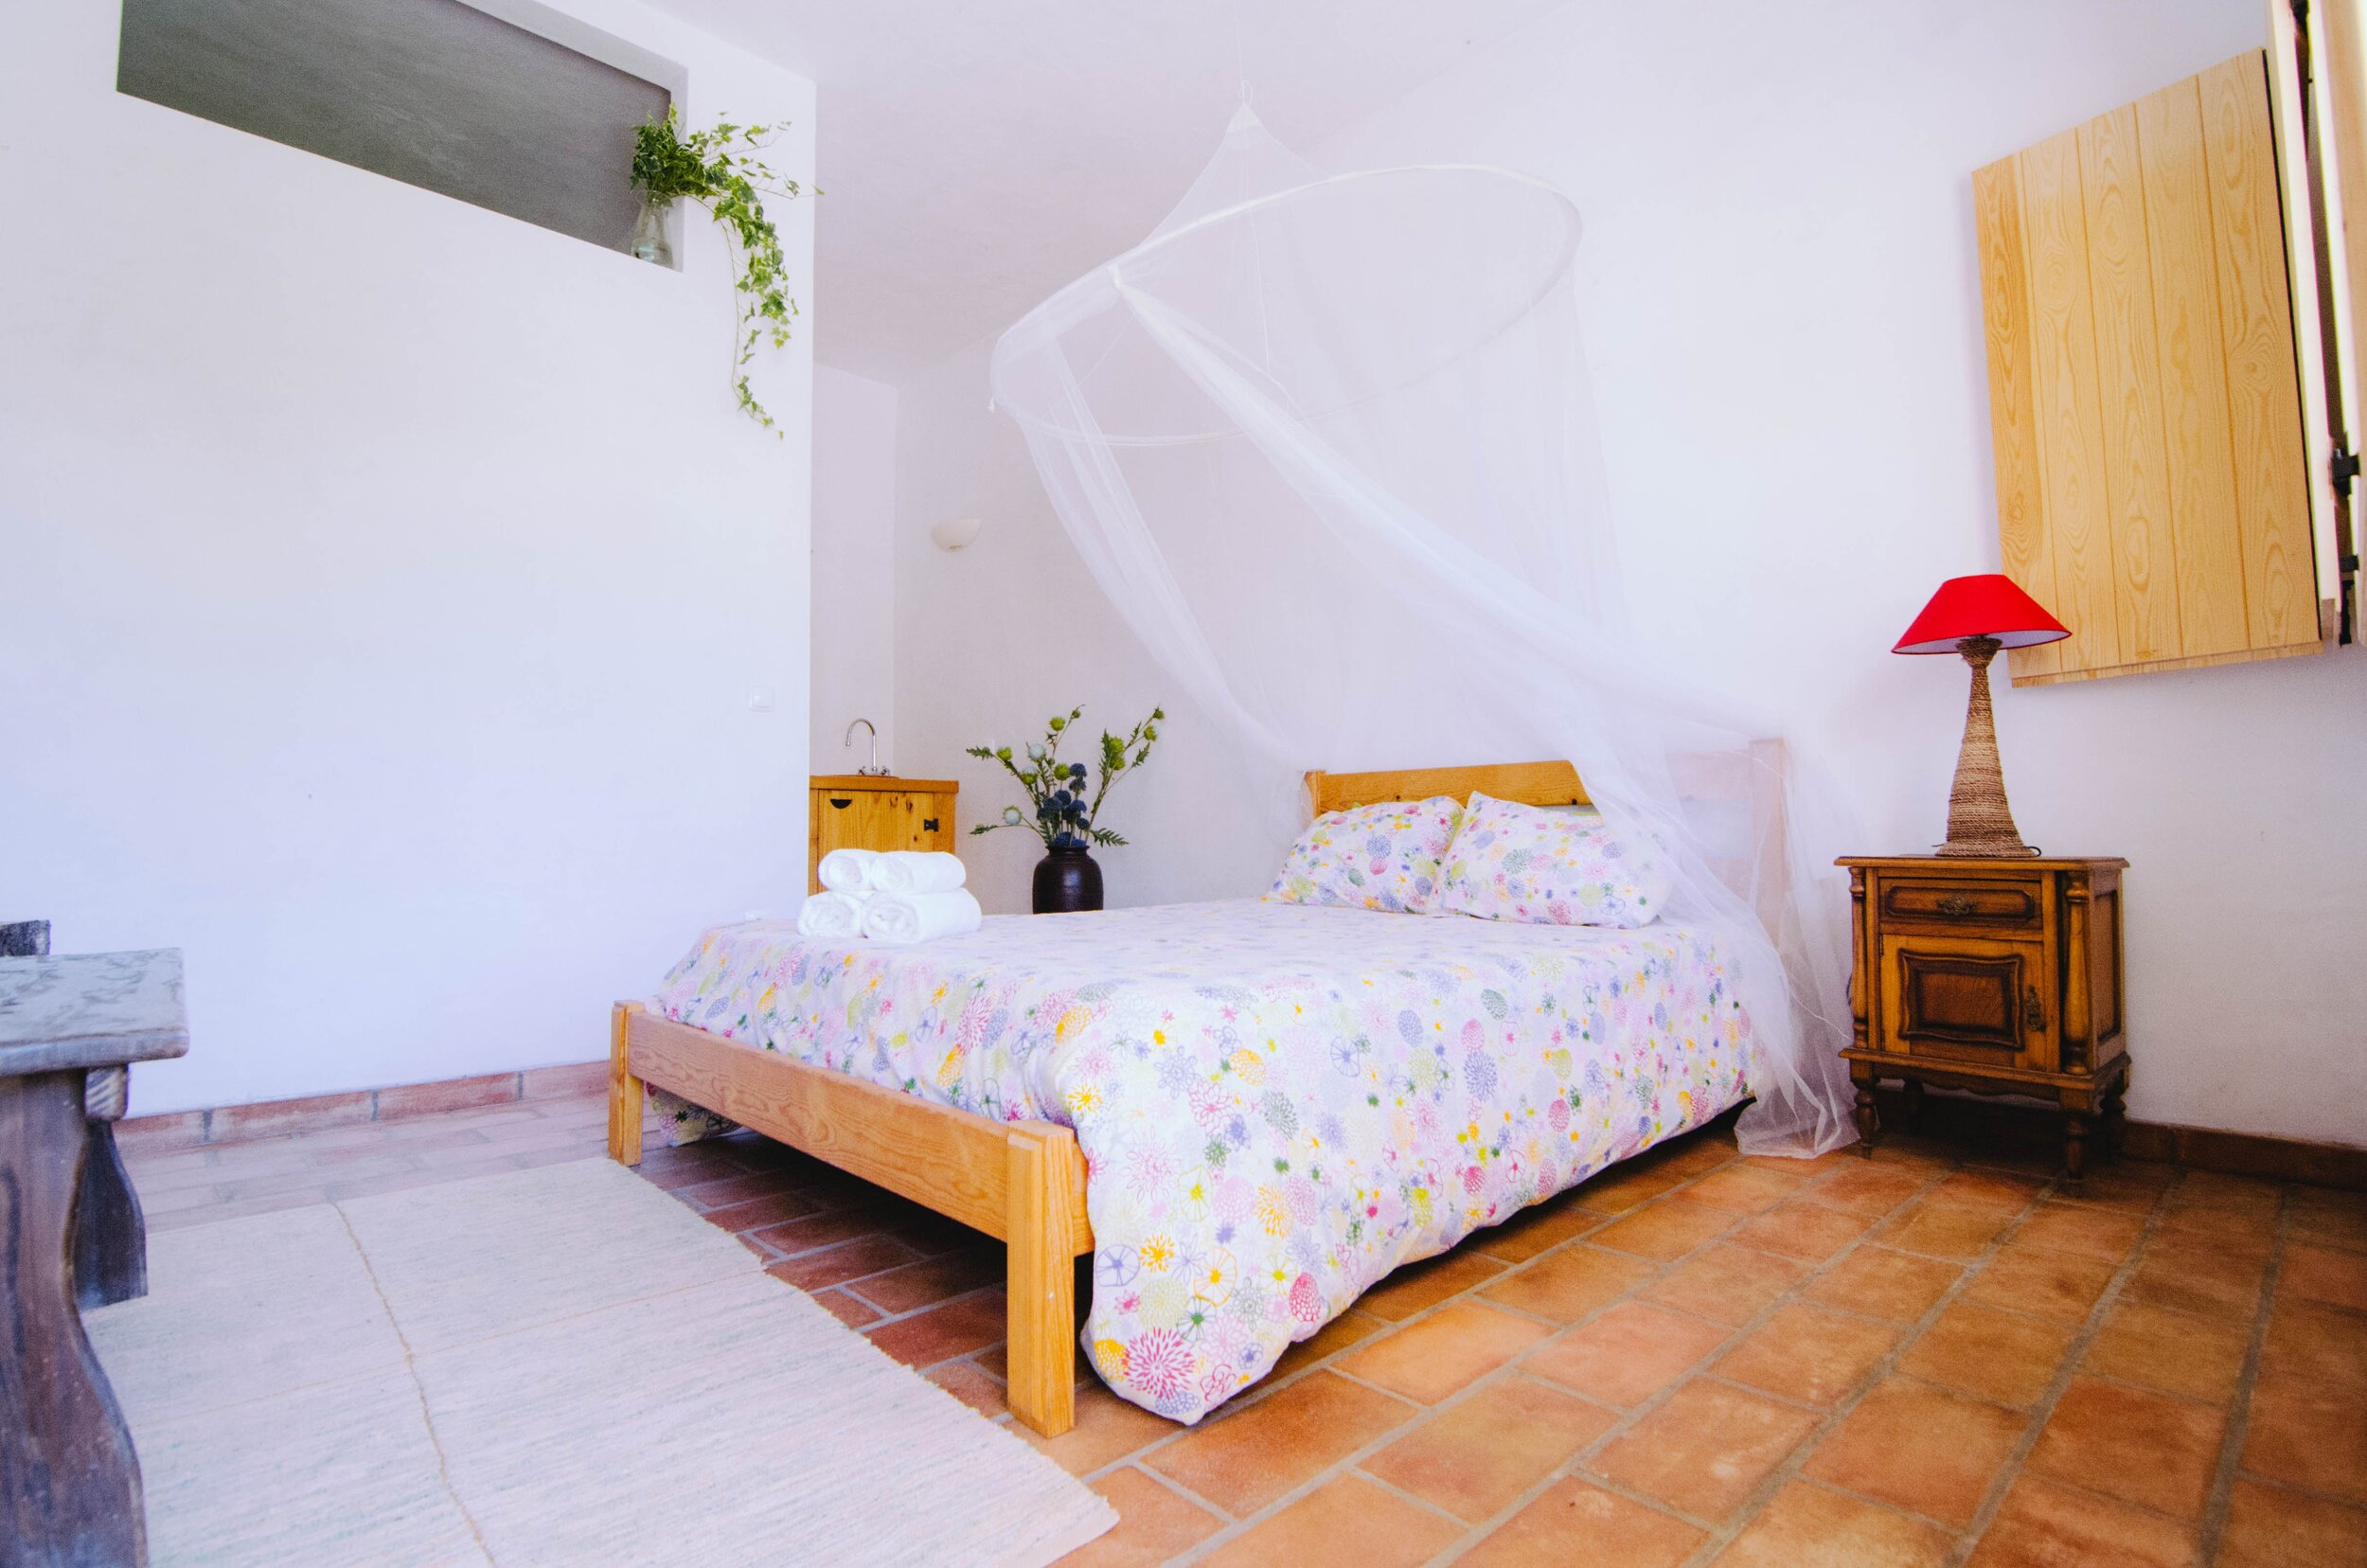 DOUBLE ROOM FOR SINGLE USE   - SINGLE ROOM FOR YOURSELF  - DOUBLE BED  - BATHROOM / SHOWER INSIDE THE ROOM  - KITCHENETTE   PRICE: 2100 EUR